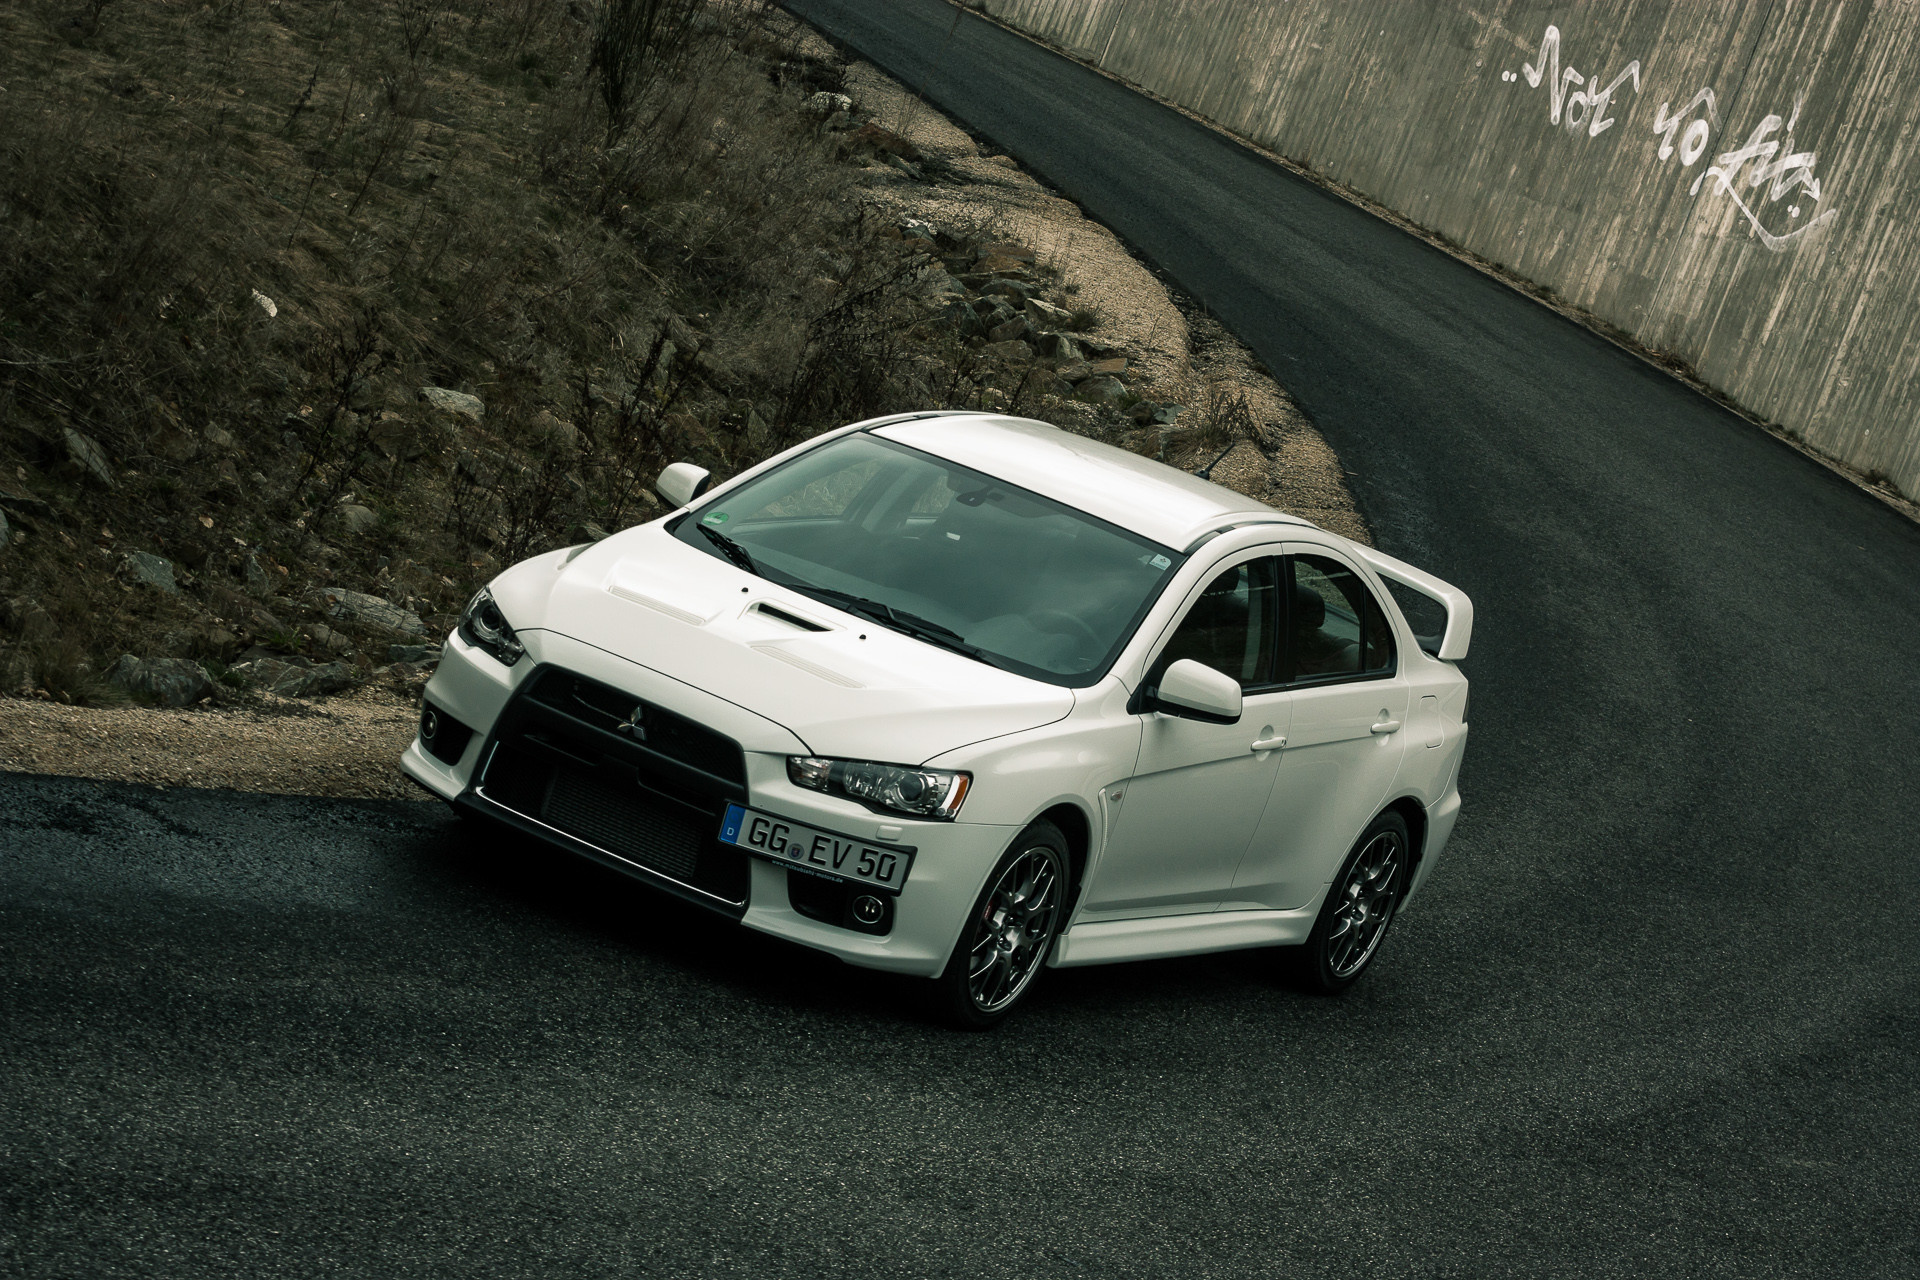 Mitsubishi Lancer Evo Wallpapers 69 Background Pictures